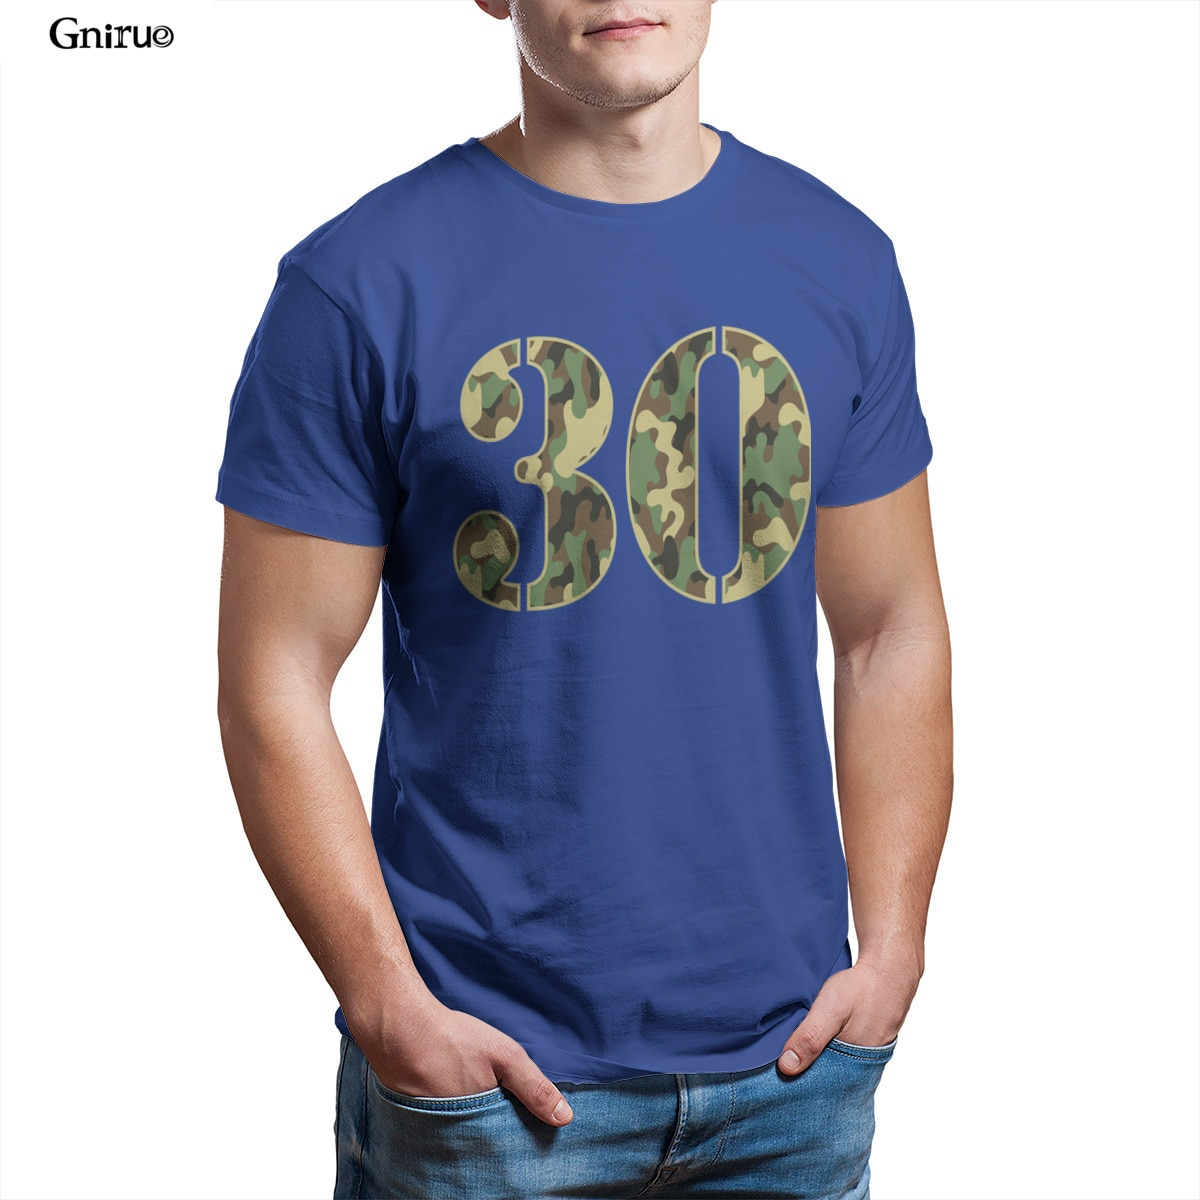 Wholesale 30th Birthday Soldier Number 30 Year Old Camo Mens V-Neck T-Shirt Games Short Sleeve Woman Unisex 90s Tees 83842